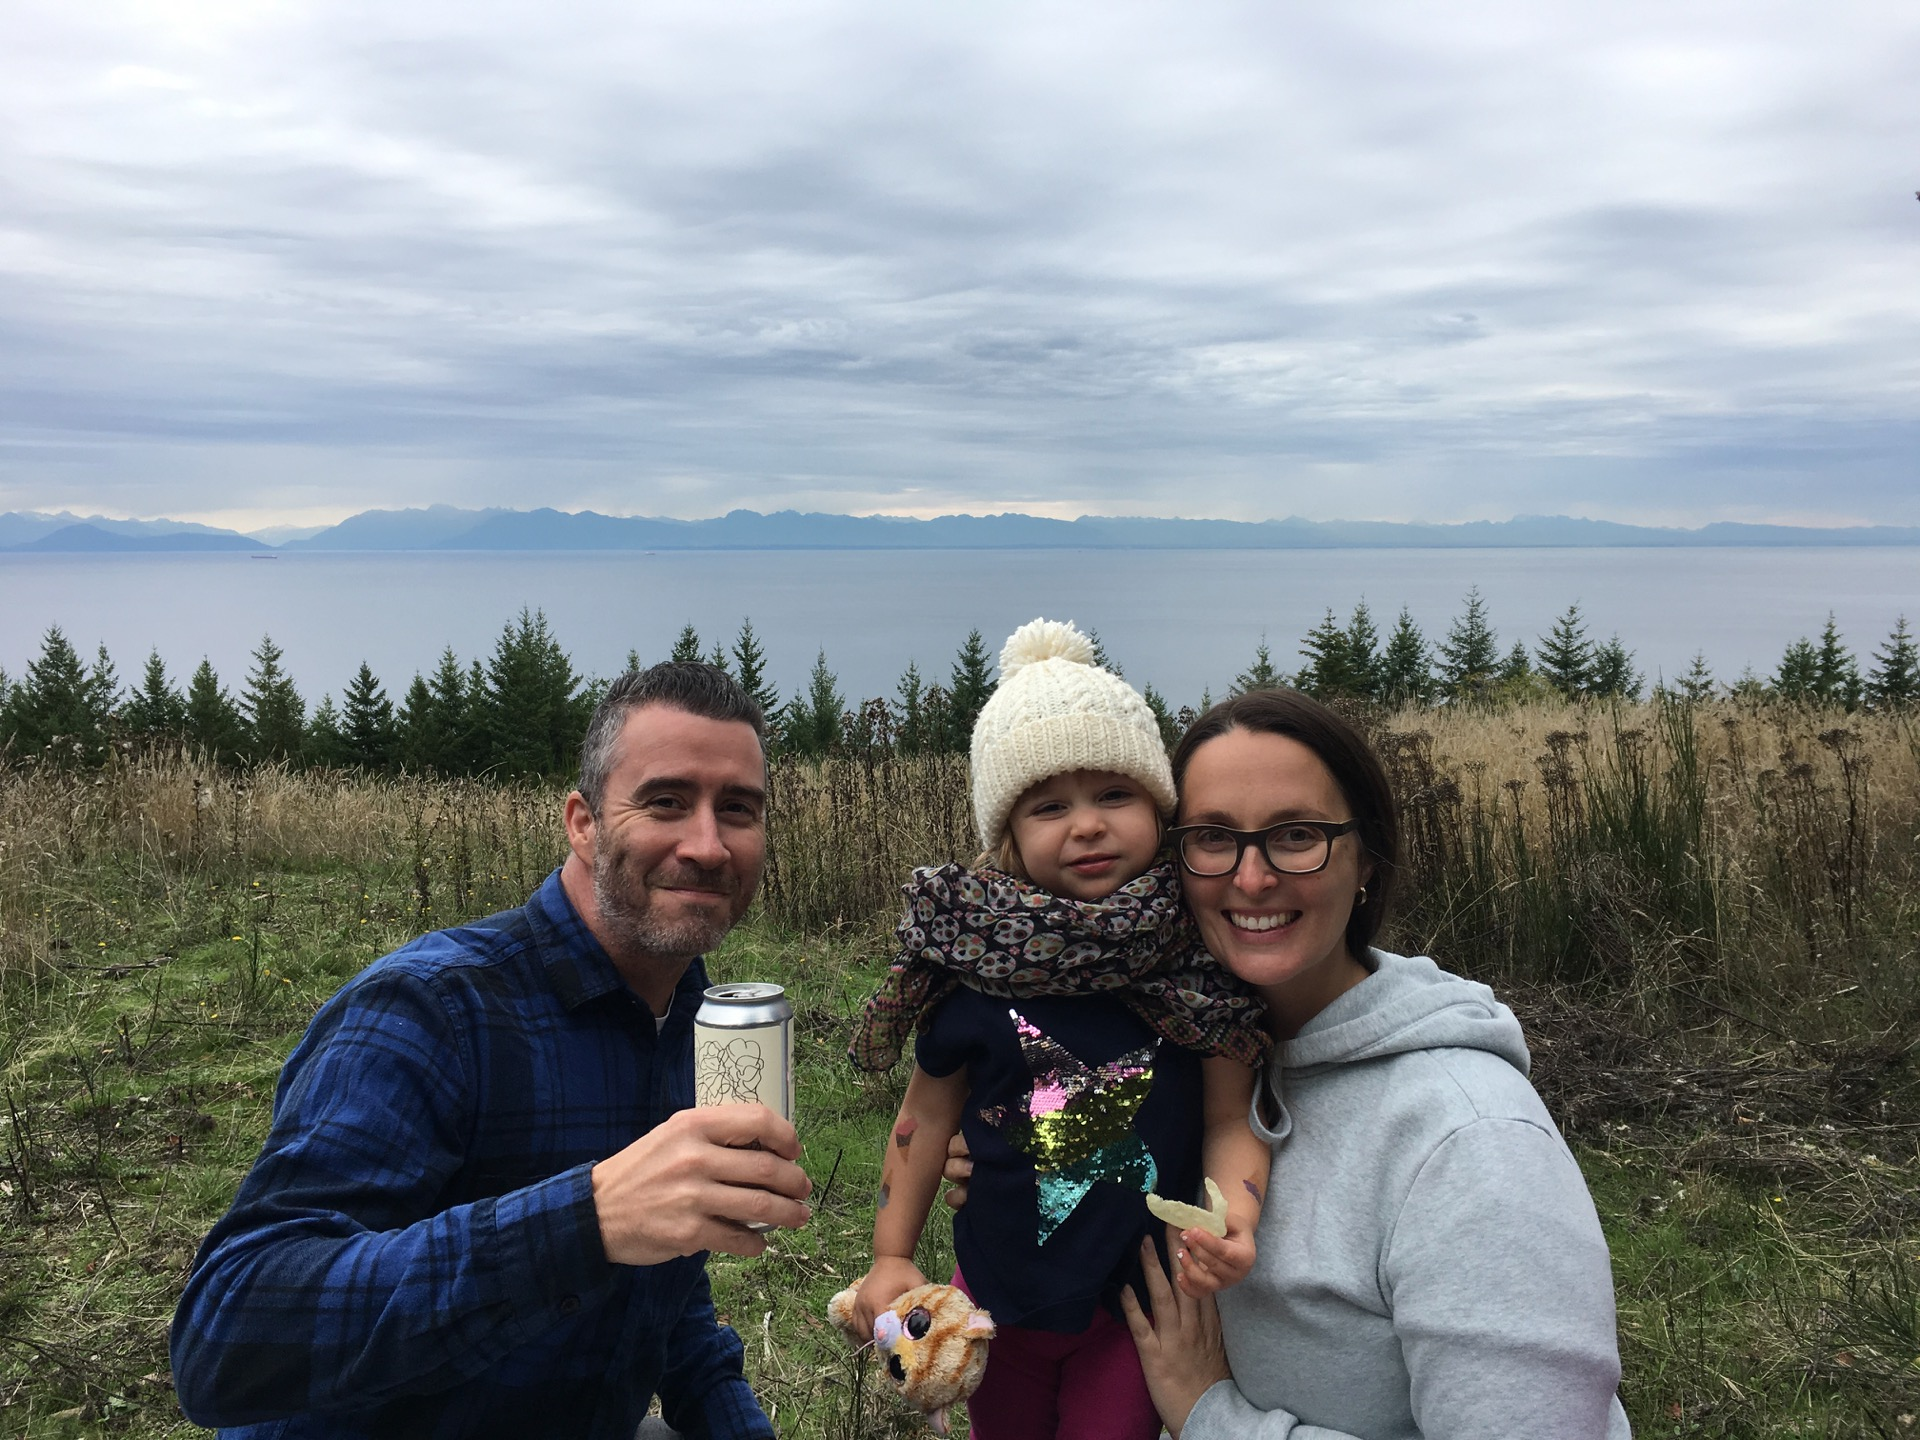 Our friends Stuart, Jo and their daughter Sova came with us for the weekend. After getting off the ferry, we headed up to show them the new property.